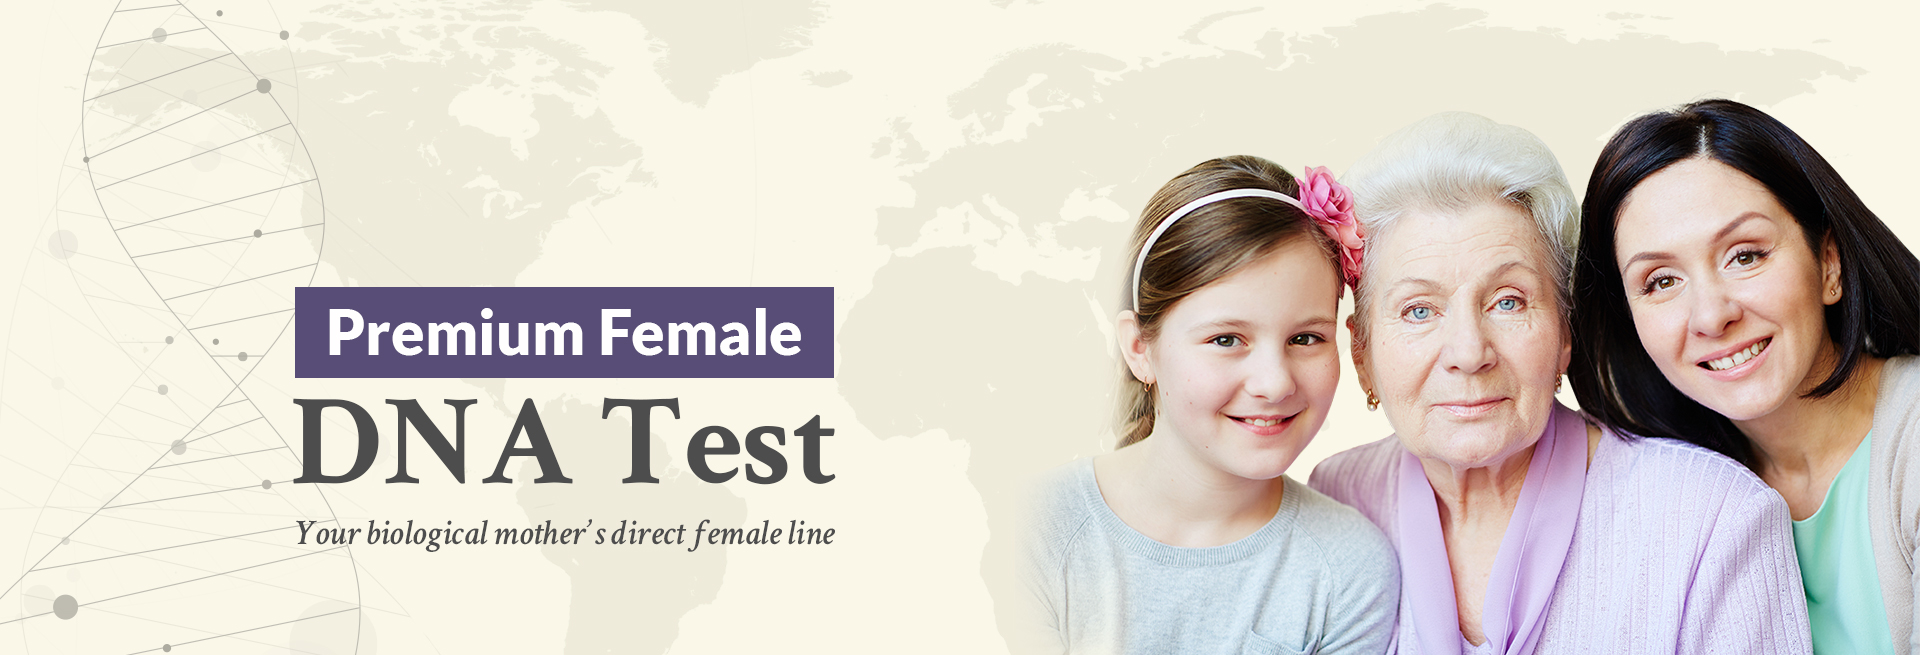 Premium Female DNA Test